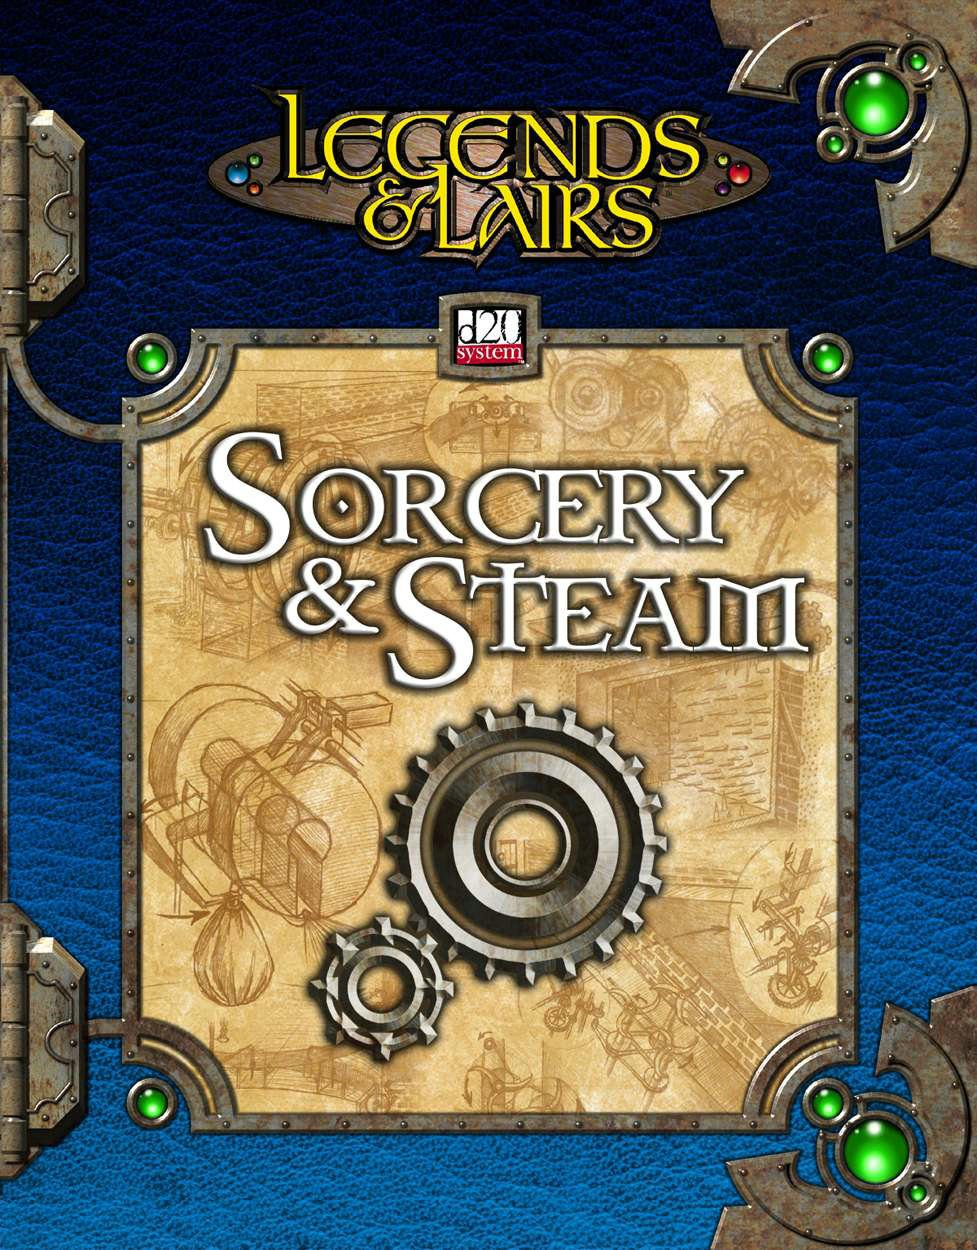 Legends and lairs cityworks pdf